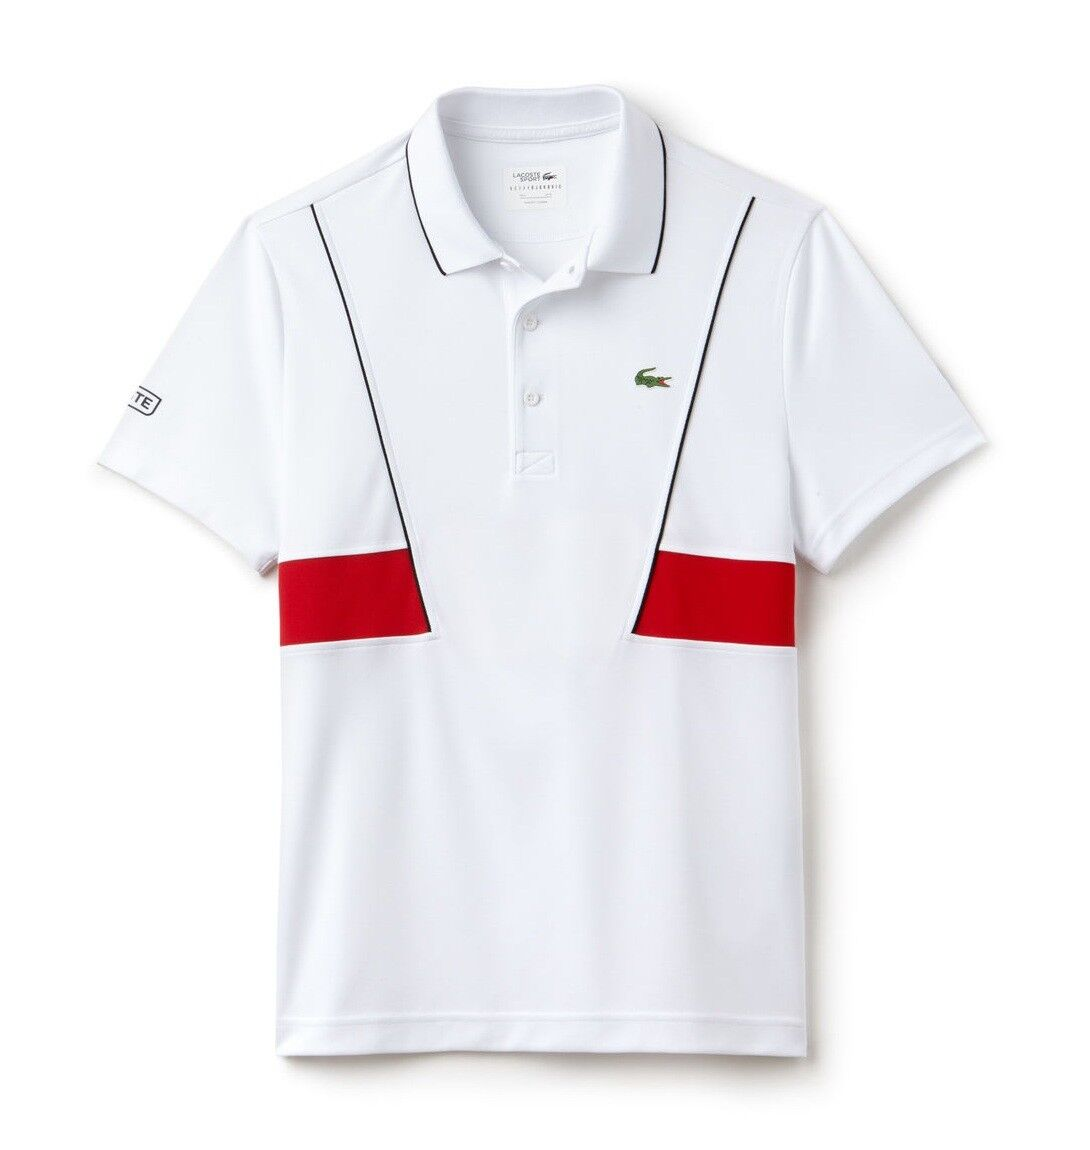 LACOSTE SPORT POLO SHIRT - XXL T7 - BNWT - WHITE - ULTRA DRY DH3325 - RRP